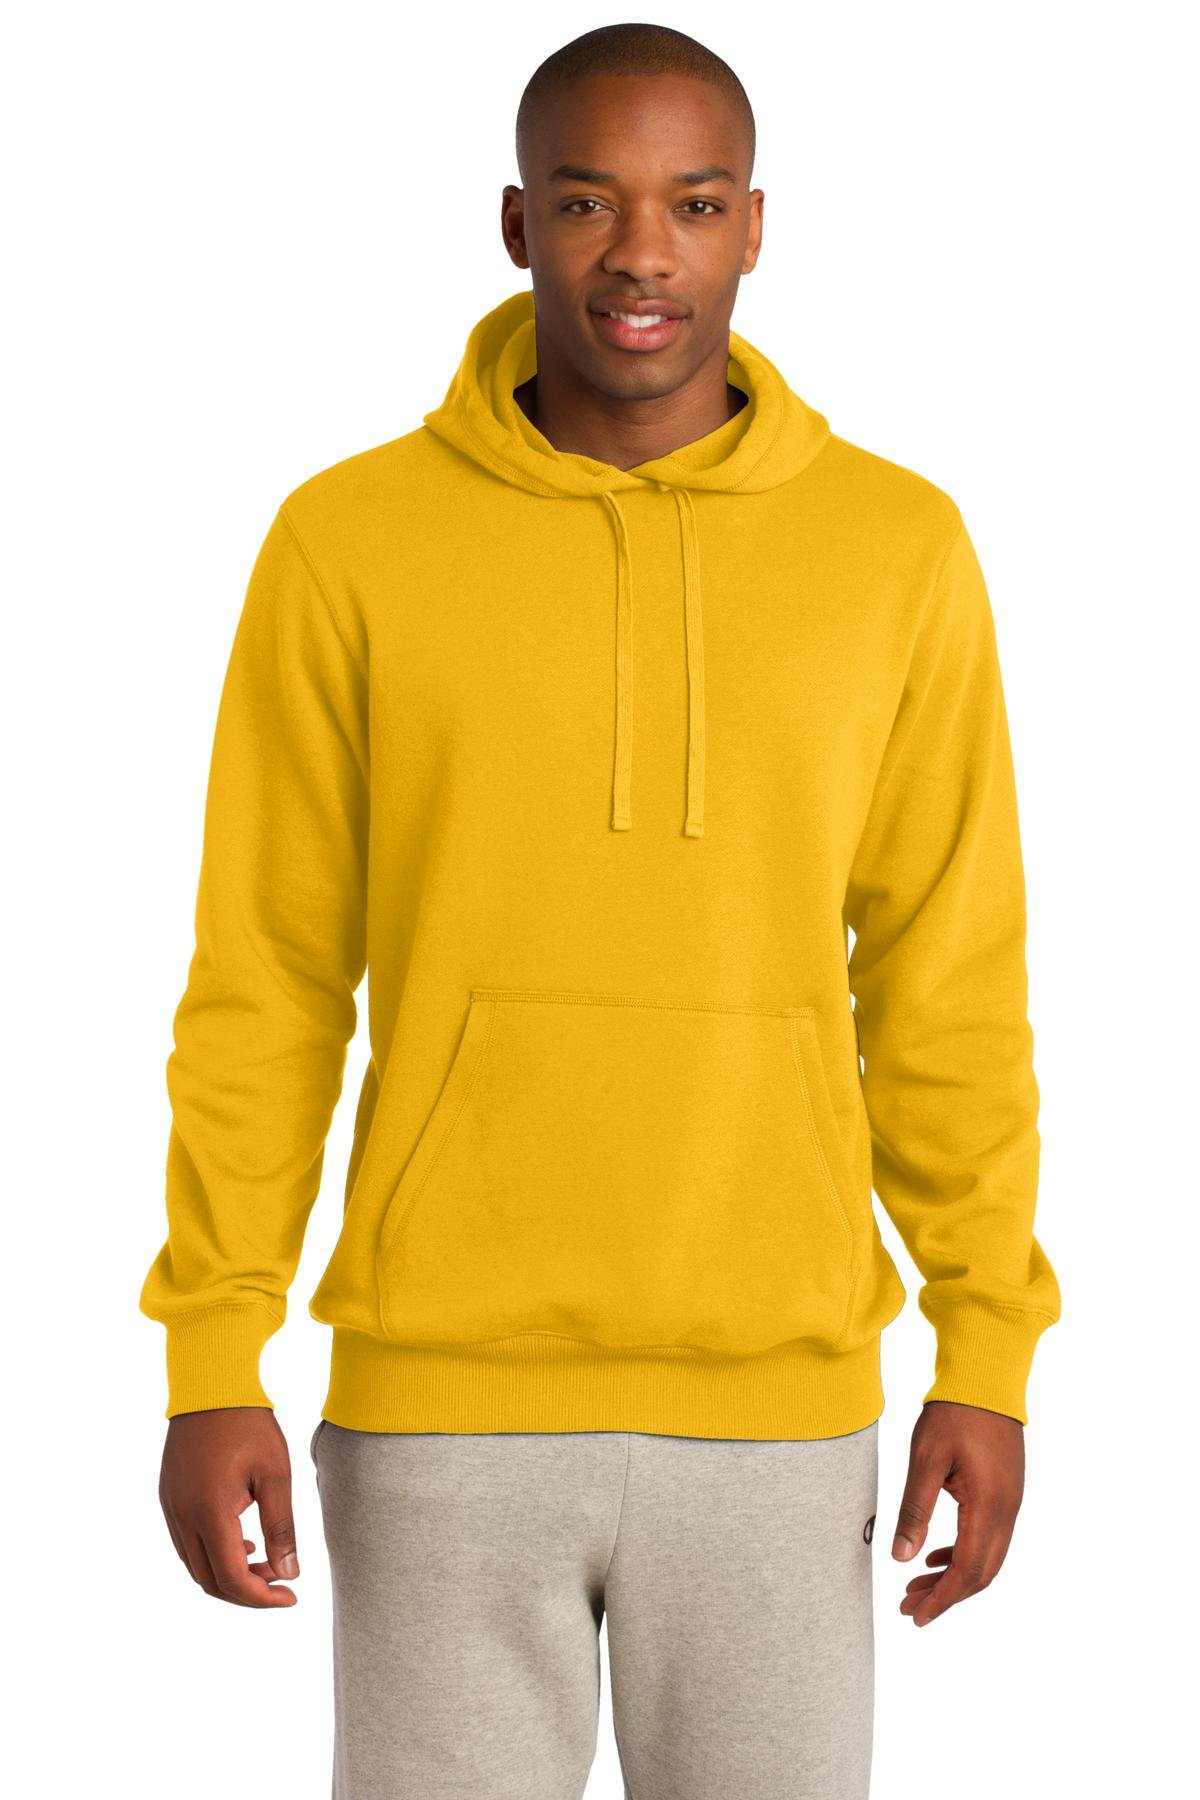 Sport-Tek Men's Pullover Hooded Sweatshirt XS Gold by Sport-Tek